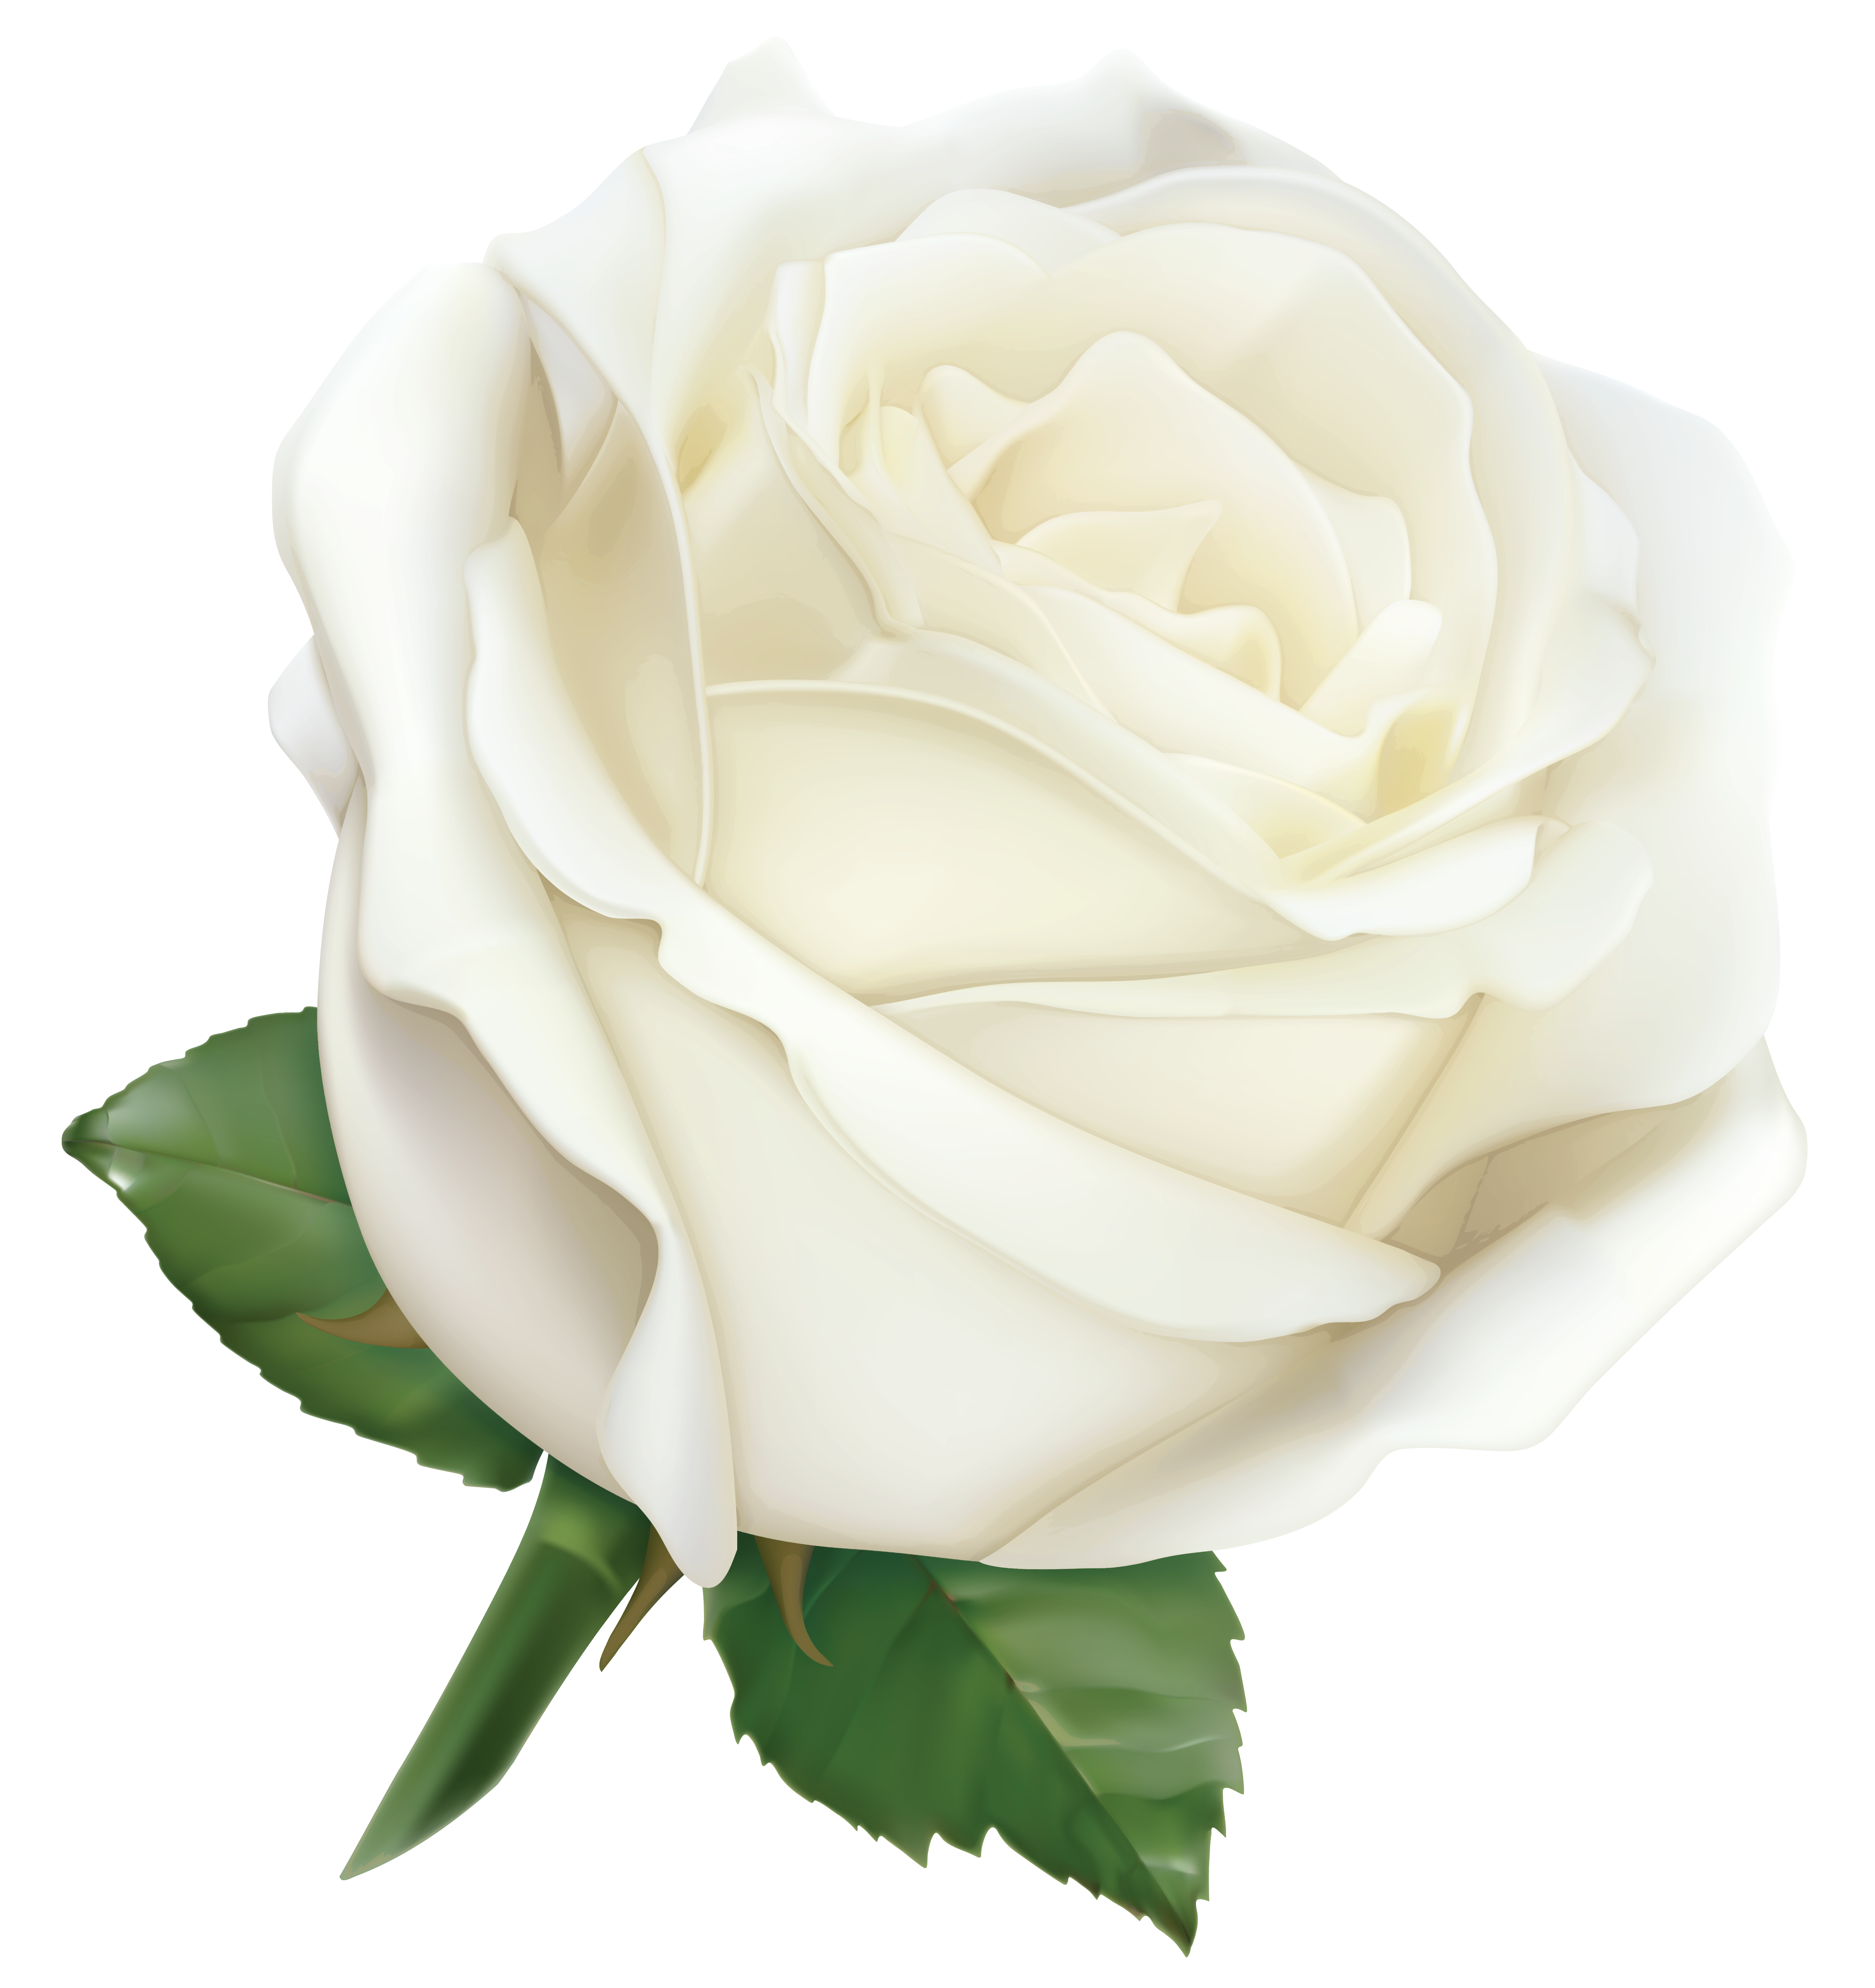 Large White Rose Png Clipart Image Gallery Yopriceville High Quality Images And Transparent Png Free Clipart White Rose Png White Rose Flower Clip Art